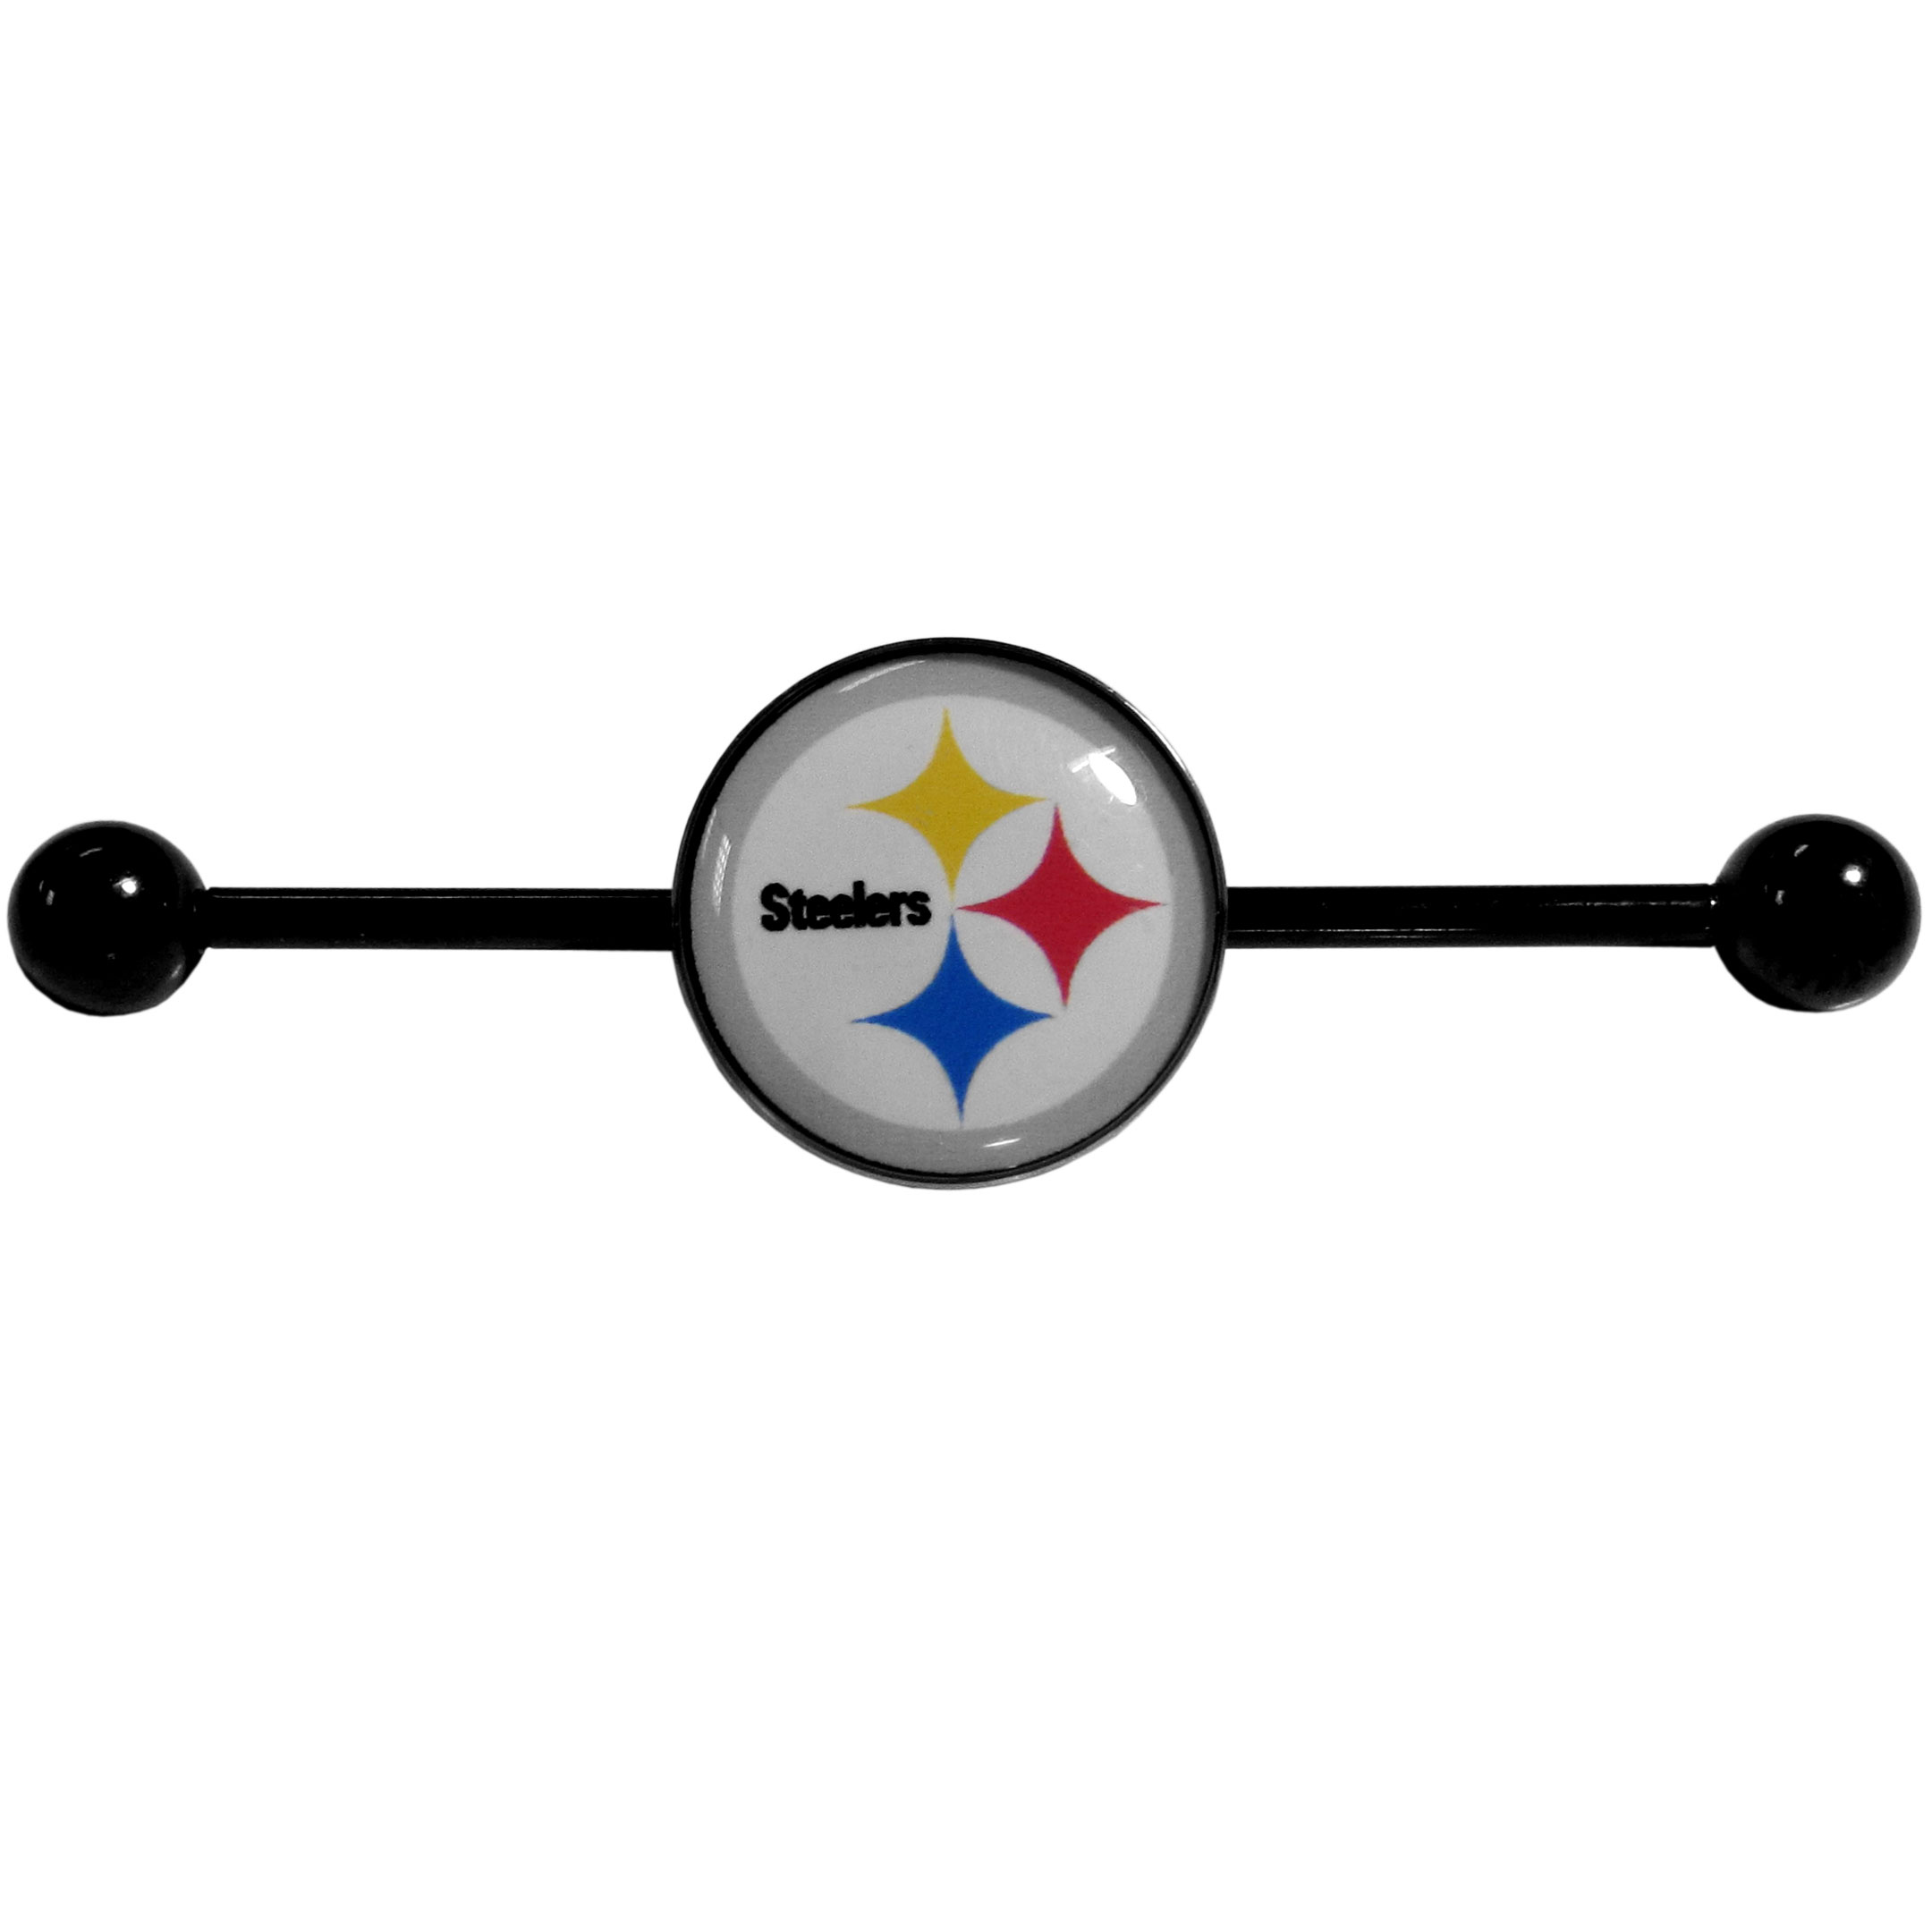 Pittsburgh Steelers Industrial Slider Barbell - Show off your love of the game with this officially licensed.Pittsburgh Steelers industrial slider barbell. The 40mm barbell features an expertly designed team slider charm